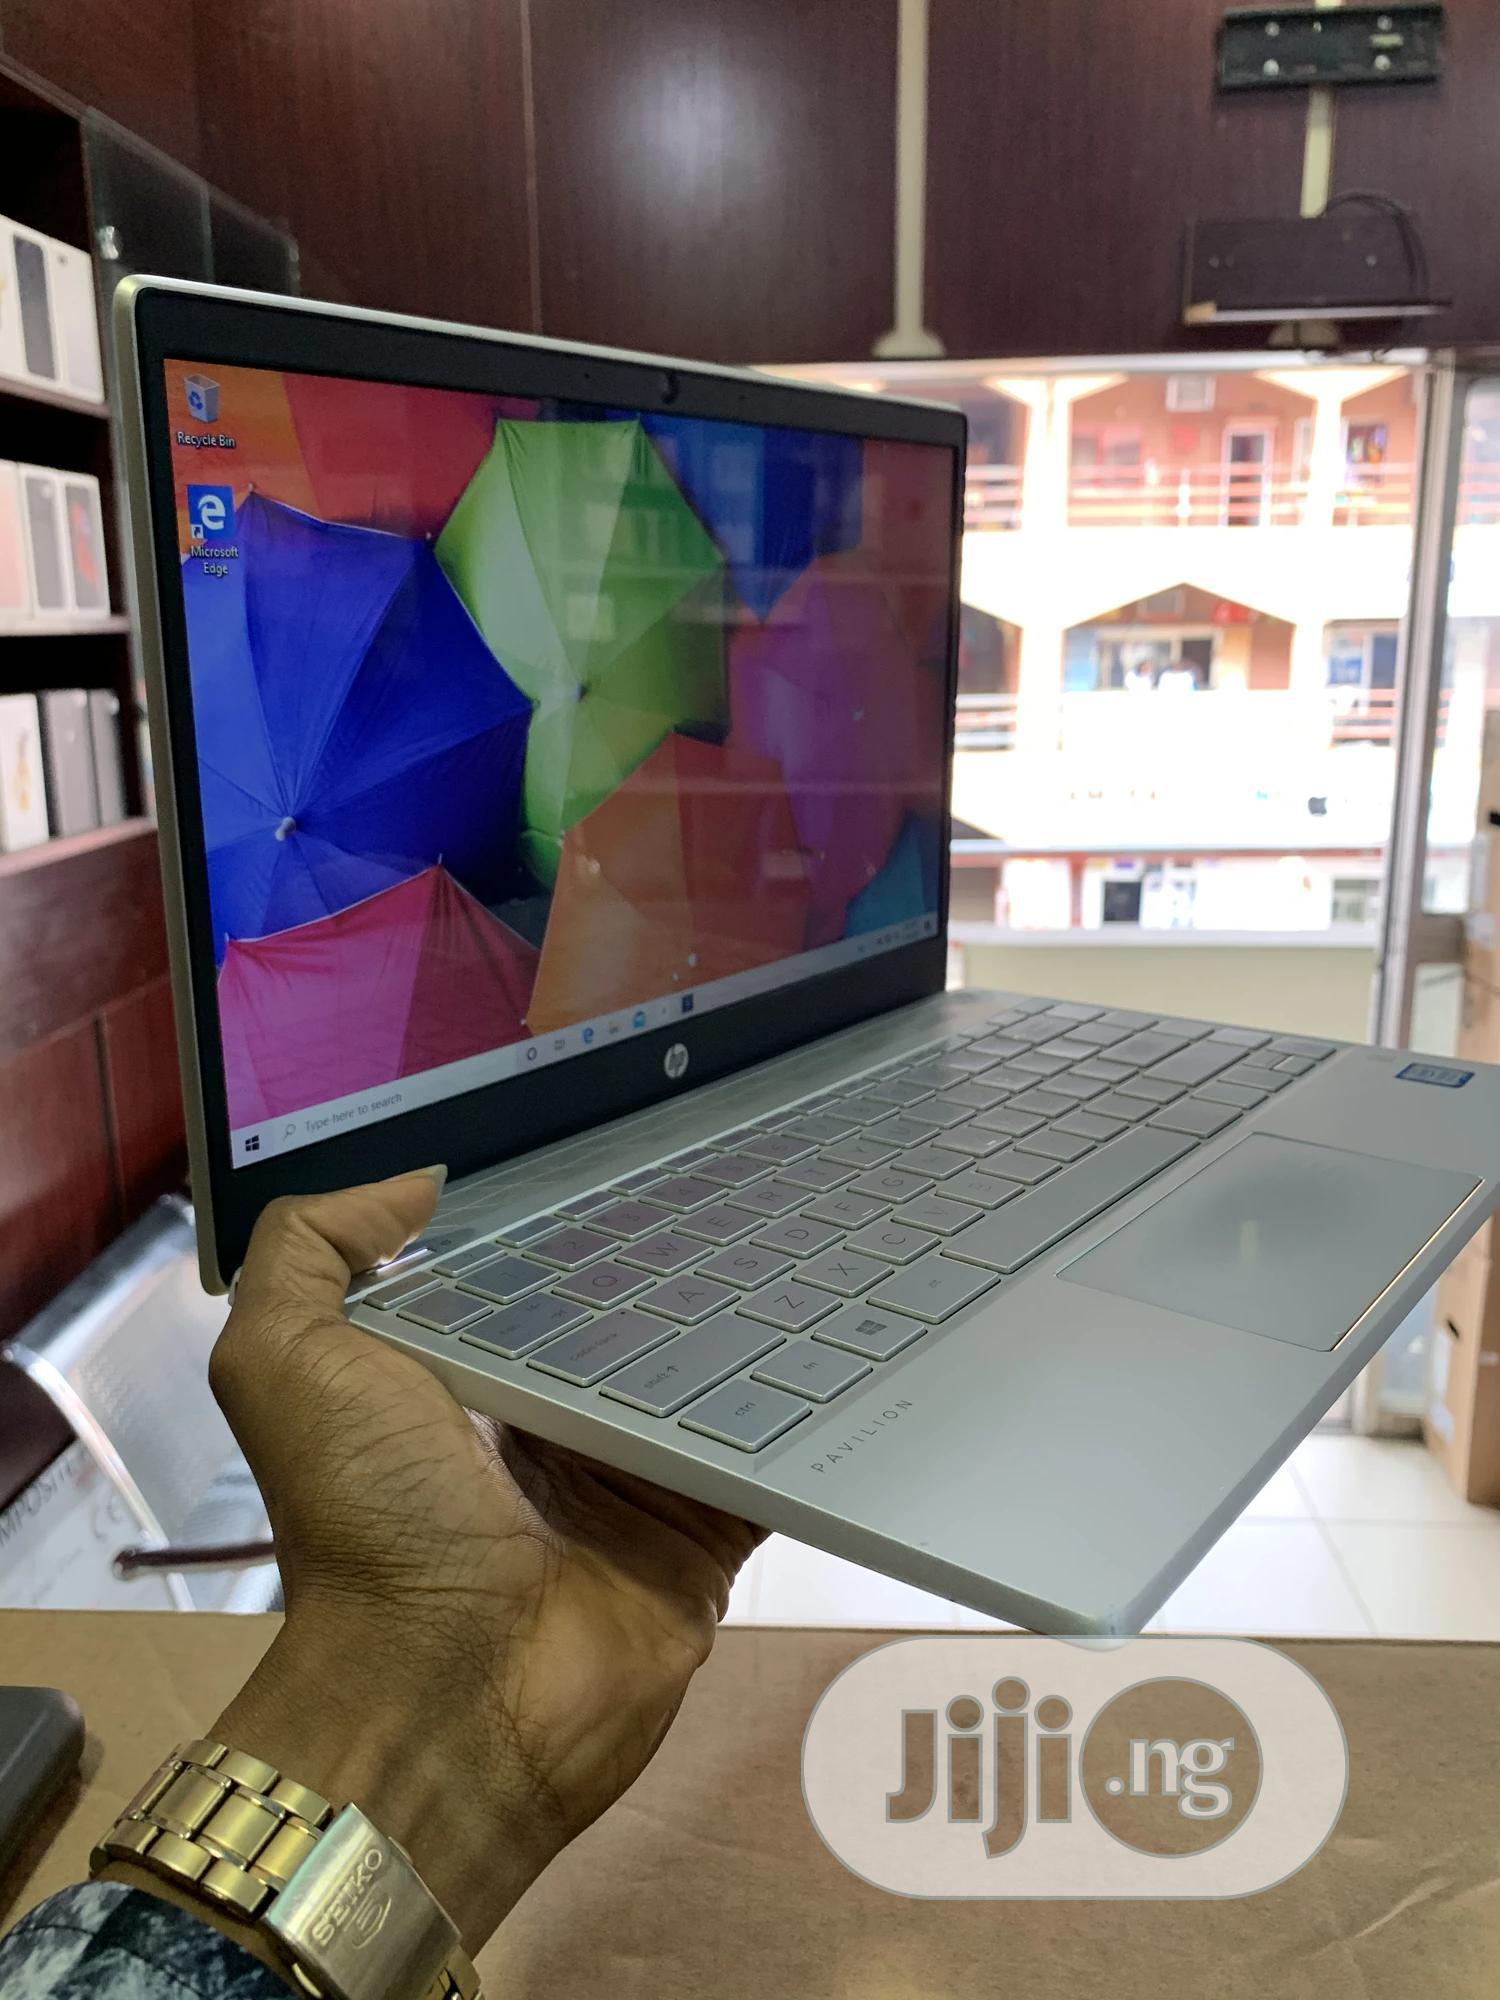 Laptop HP Pavilion 14 8GB Intel Core i5 HDD 1T | Laptops & Computers for sale in Wuse 2, Abuja (FCT) State, Nigeria